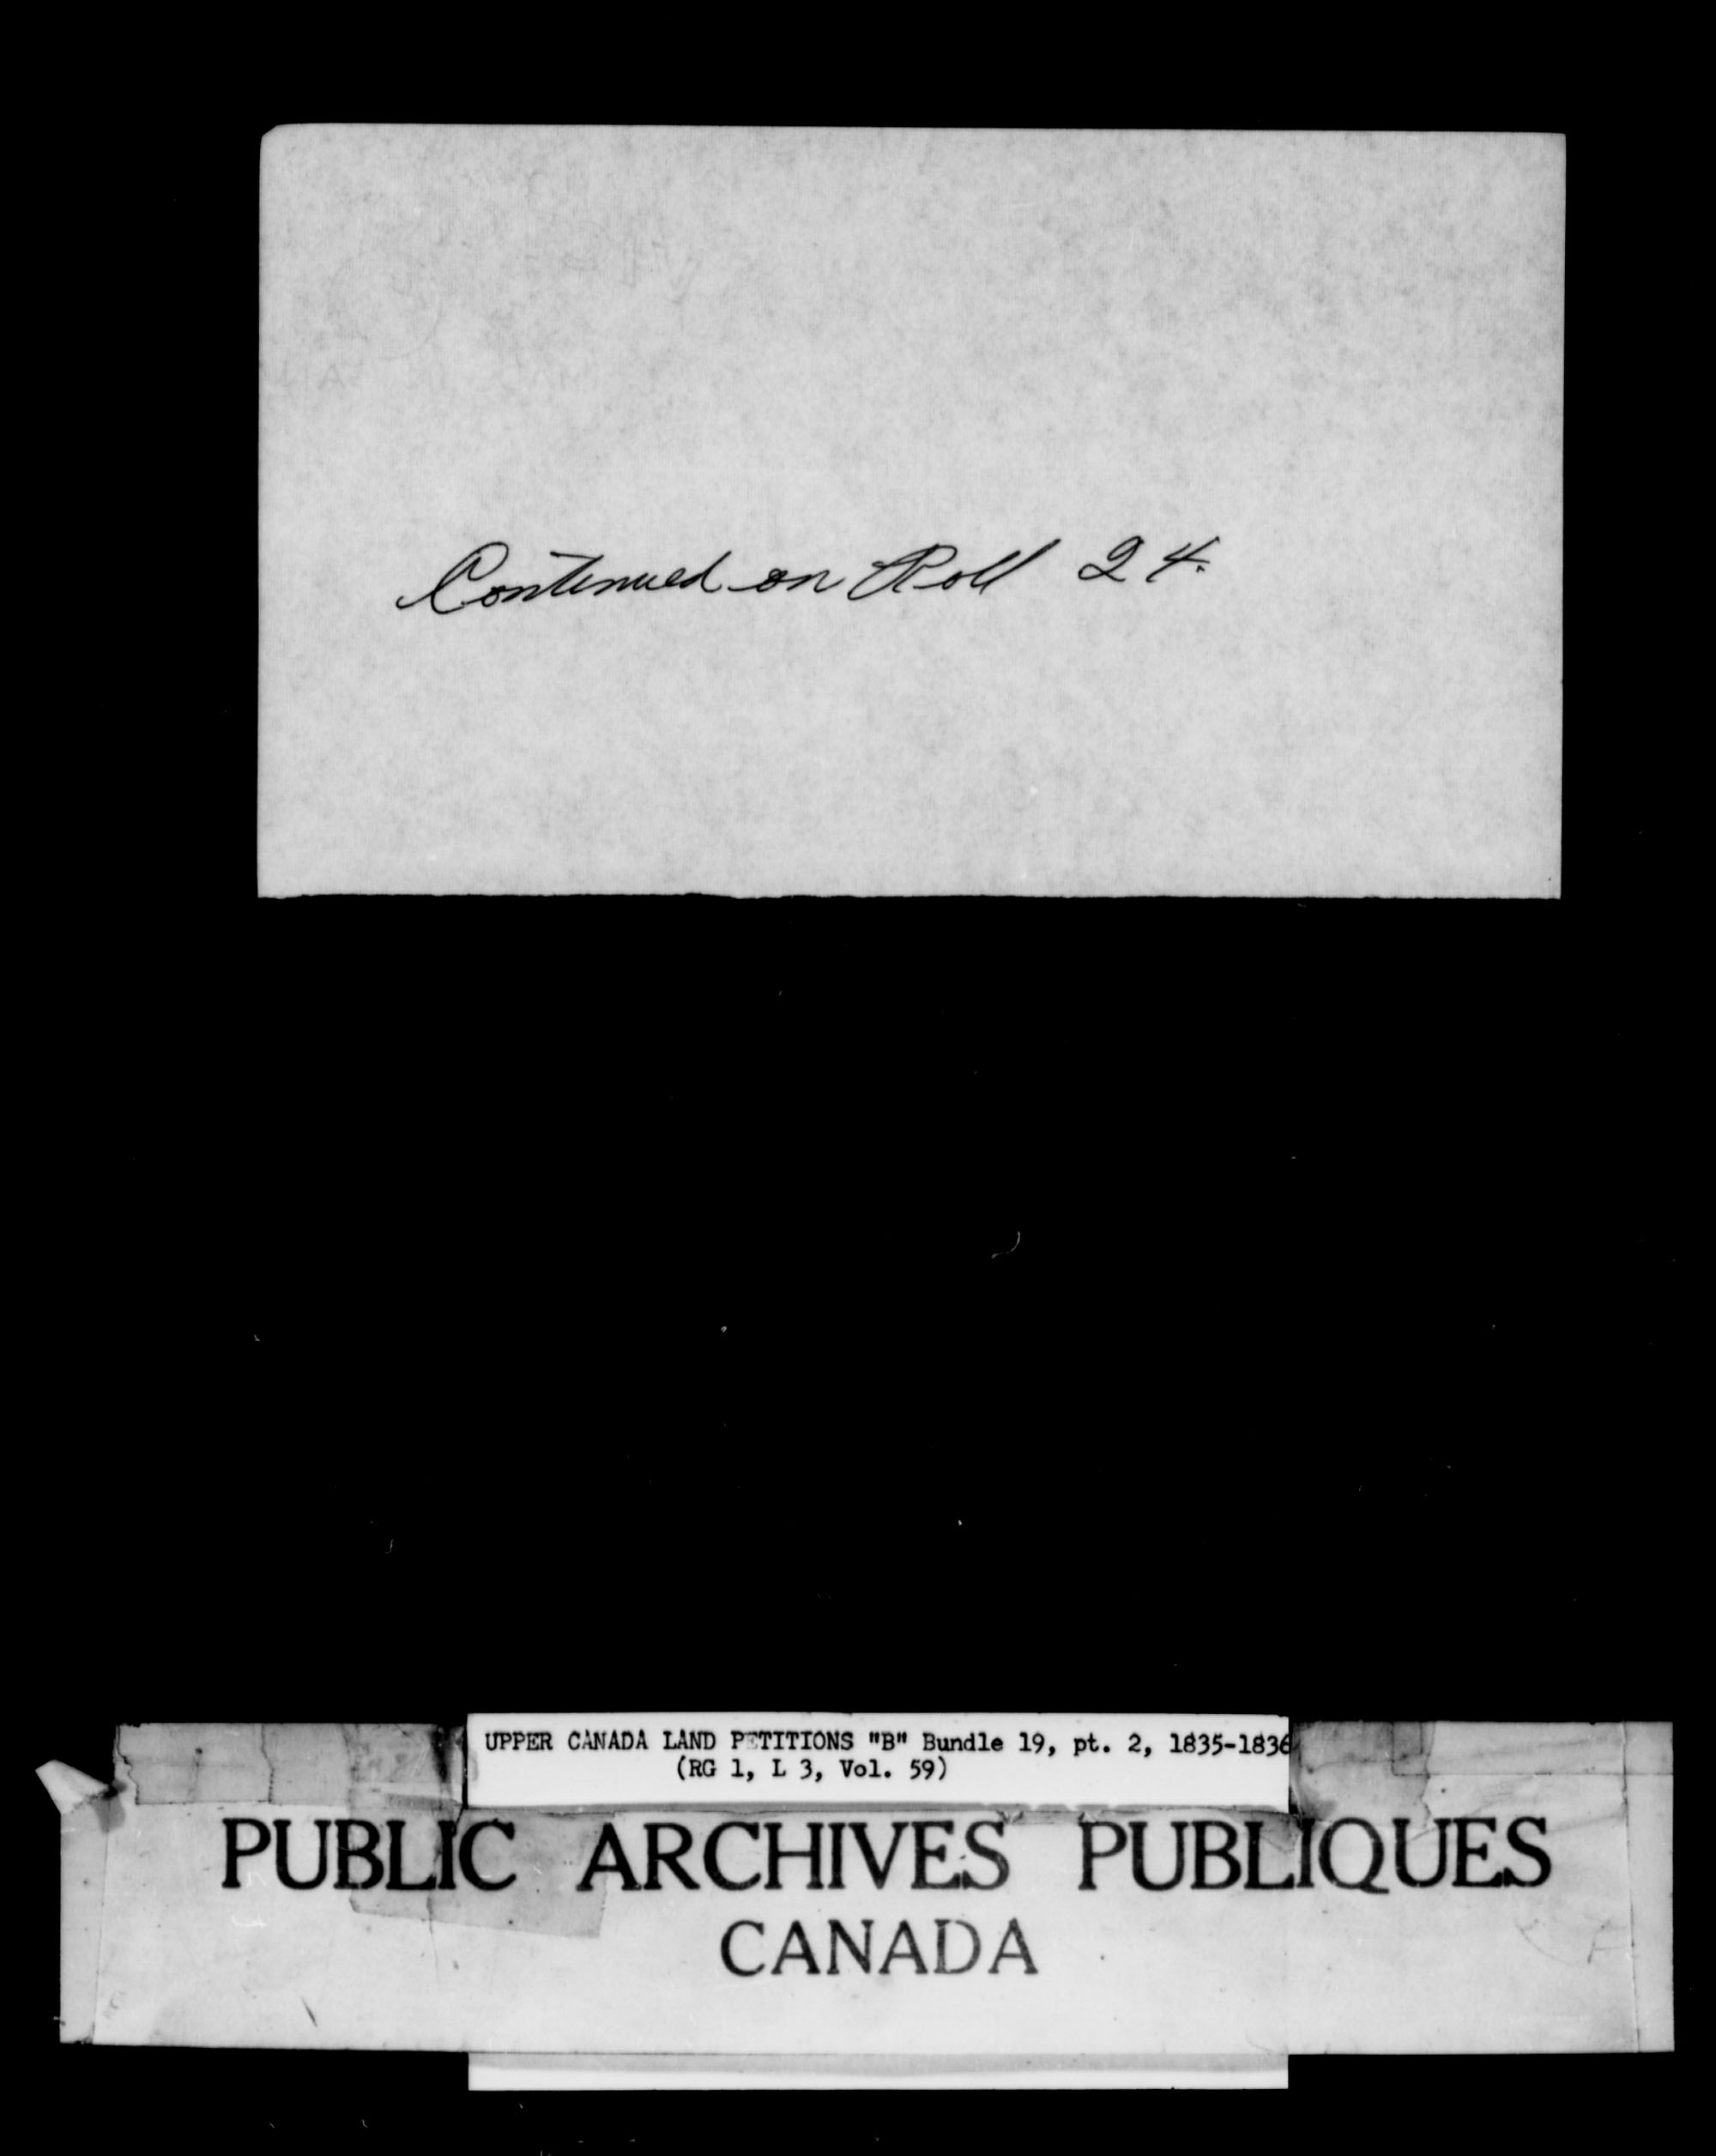 Title: Upper Canada Land Petitions (1763-1865) - Mikan Number: 205131 - Microform: c-1631